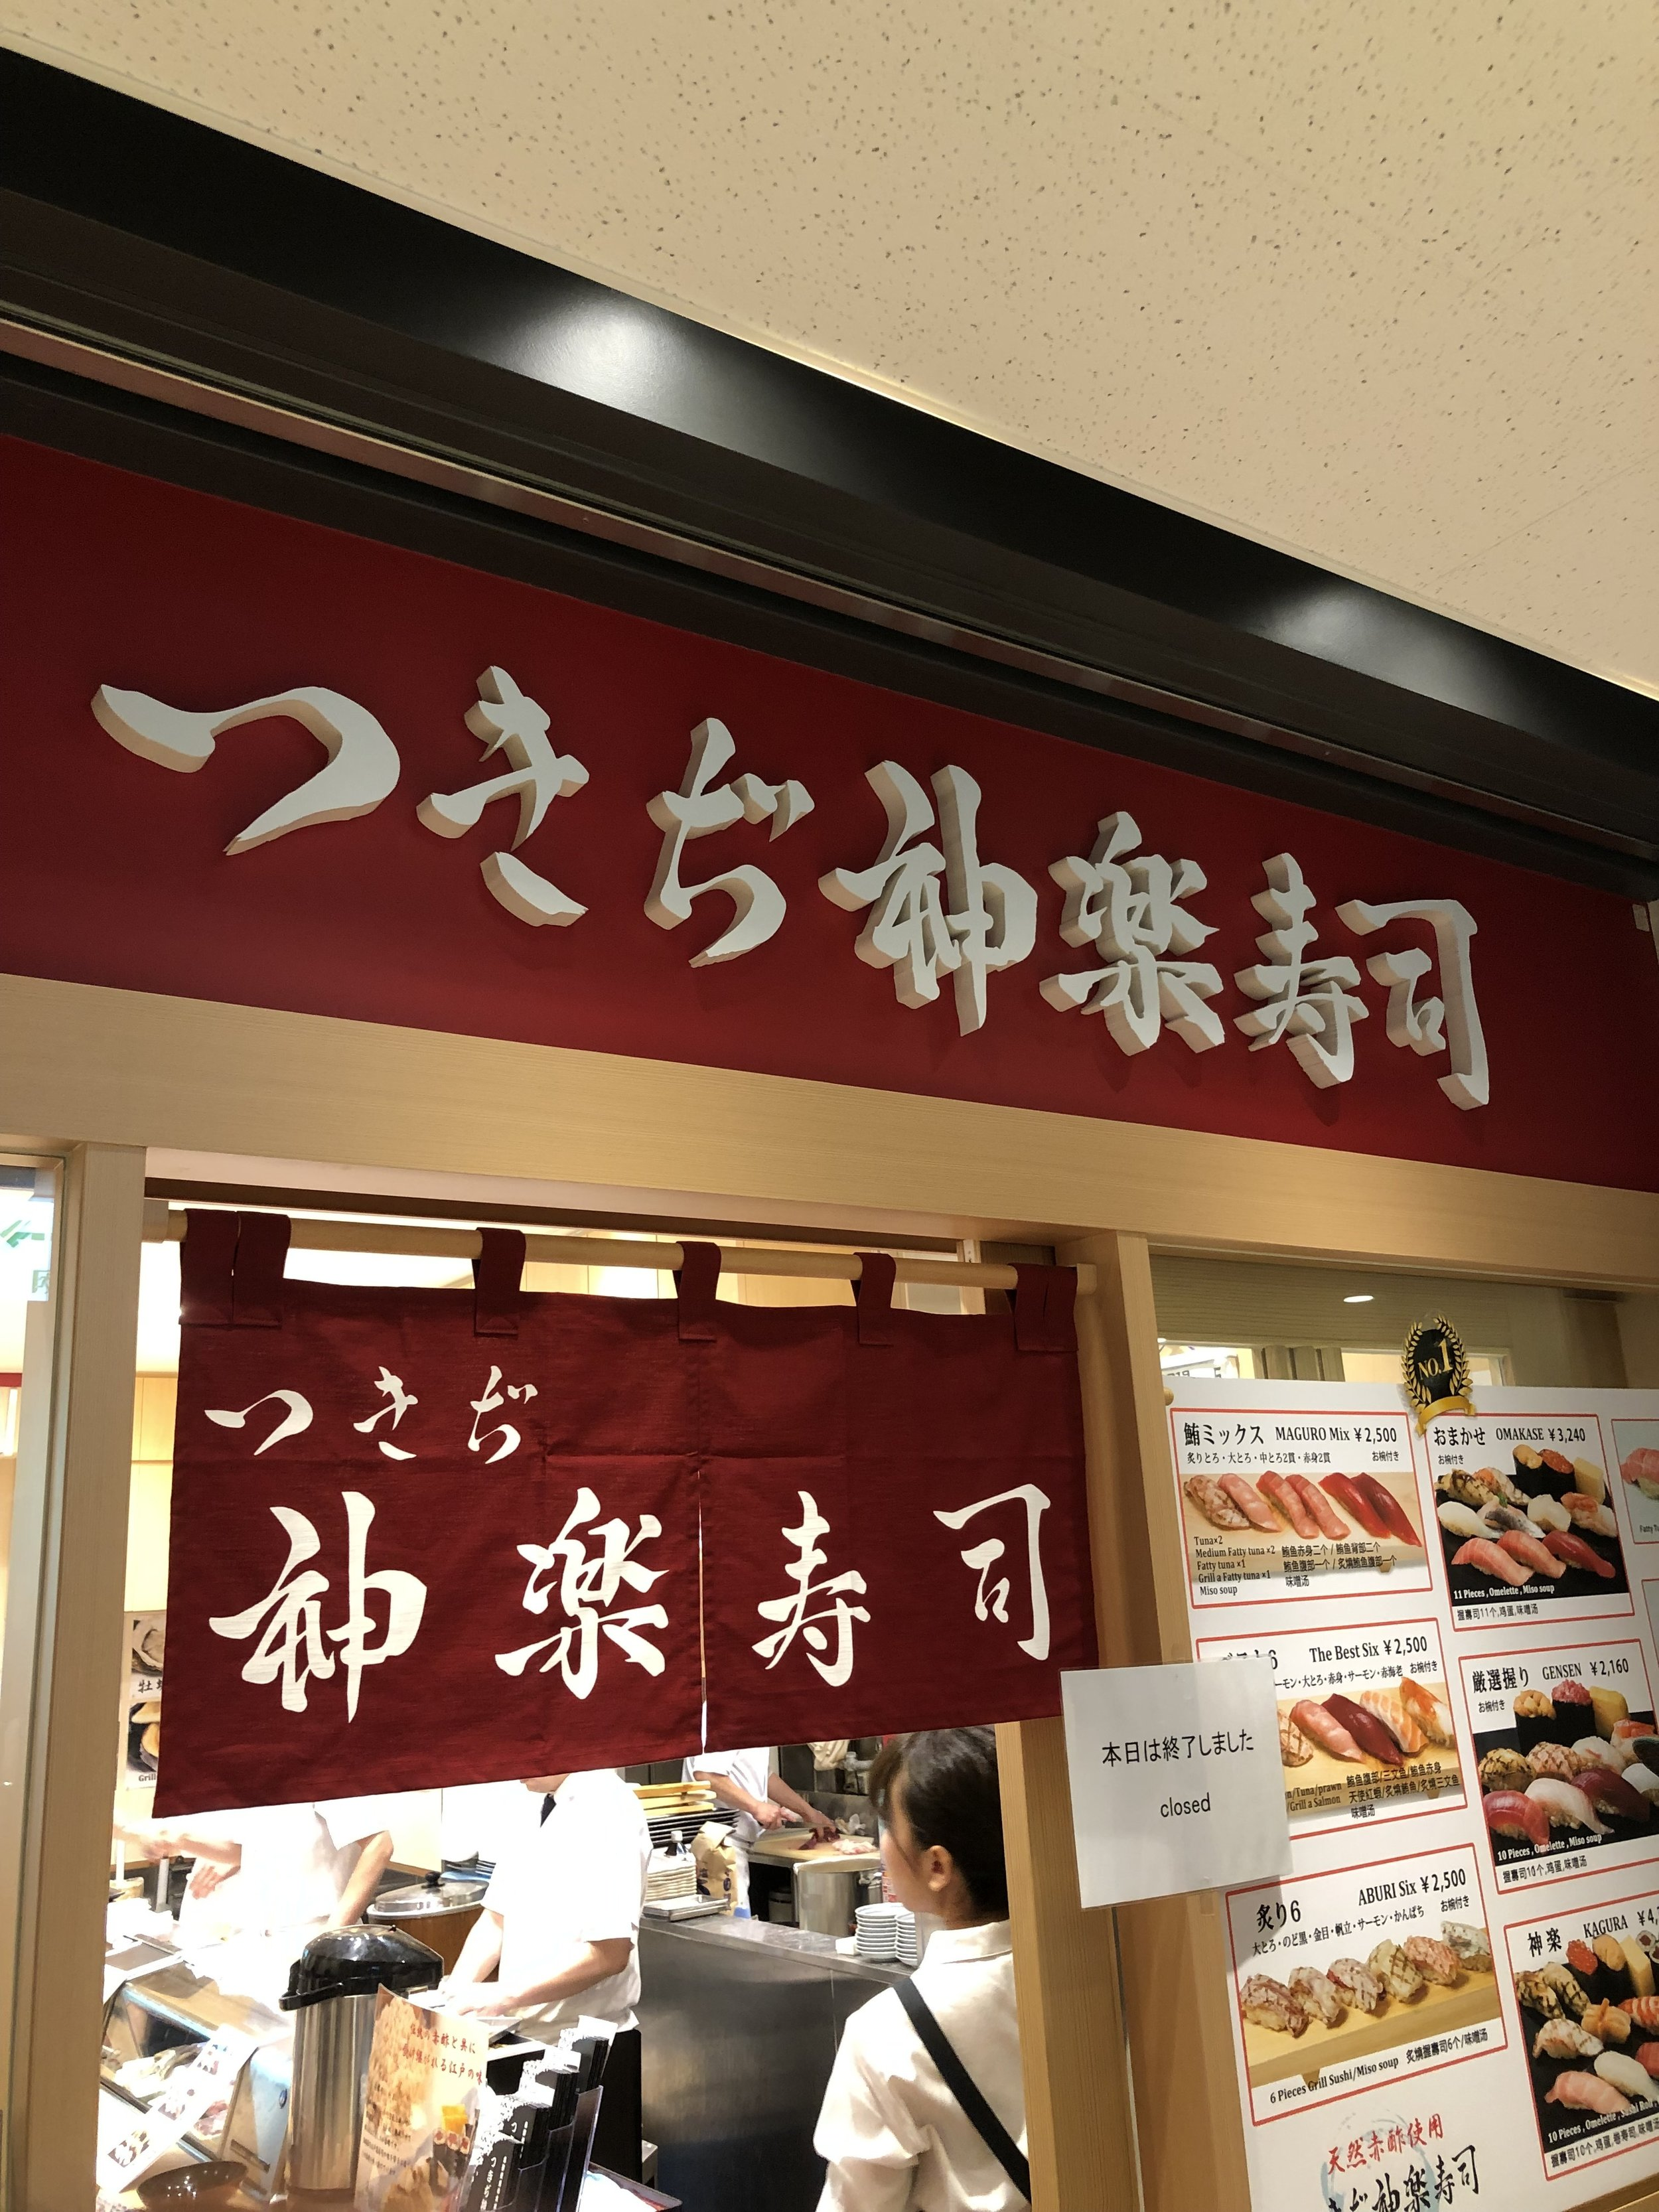 The name of our sushi spot (Toyosu)